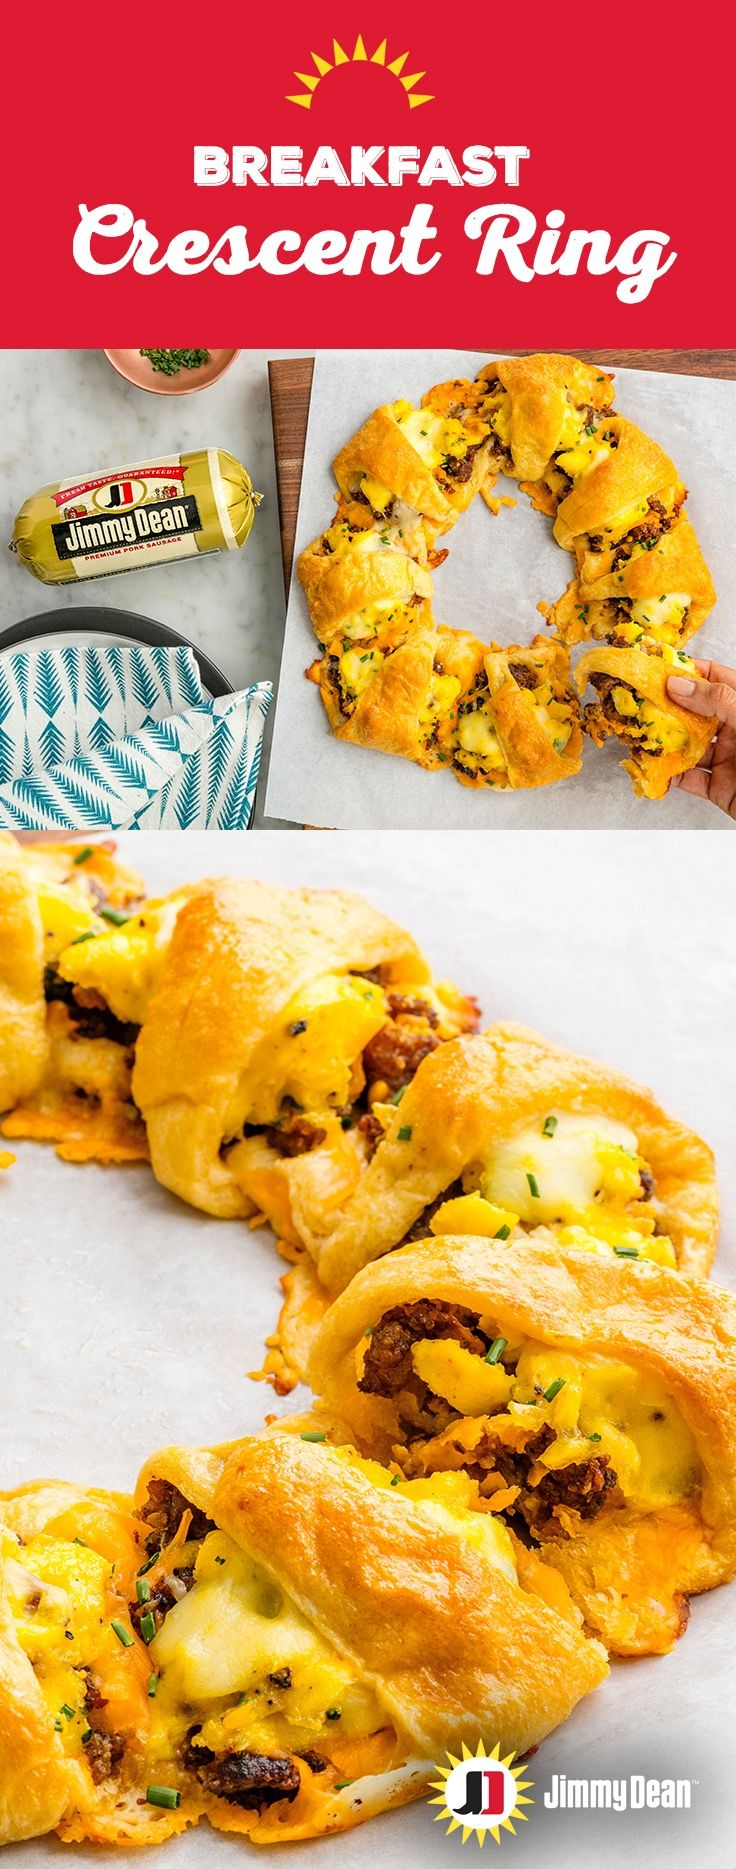 This sun-shaped wreath of crescent roll deliciousness makes